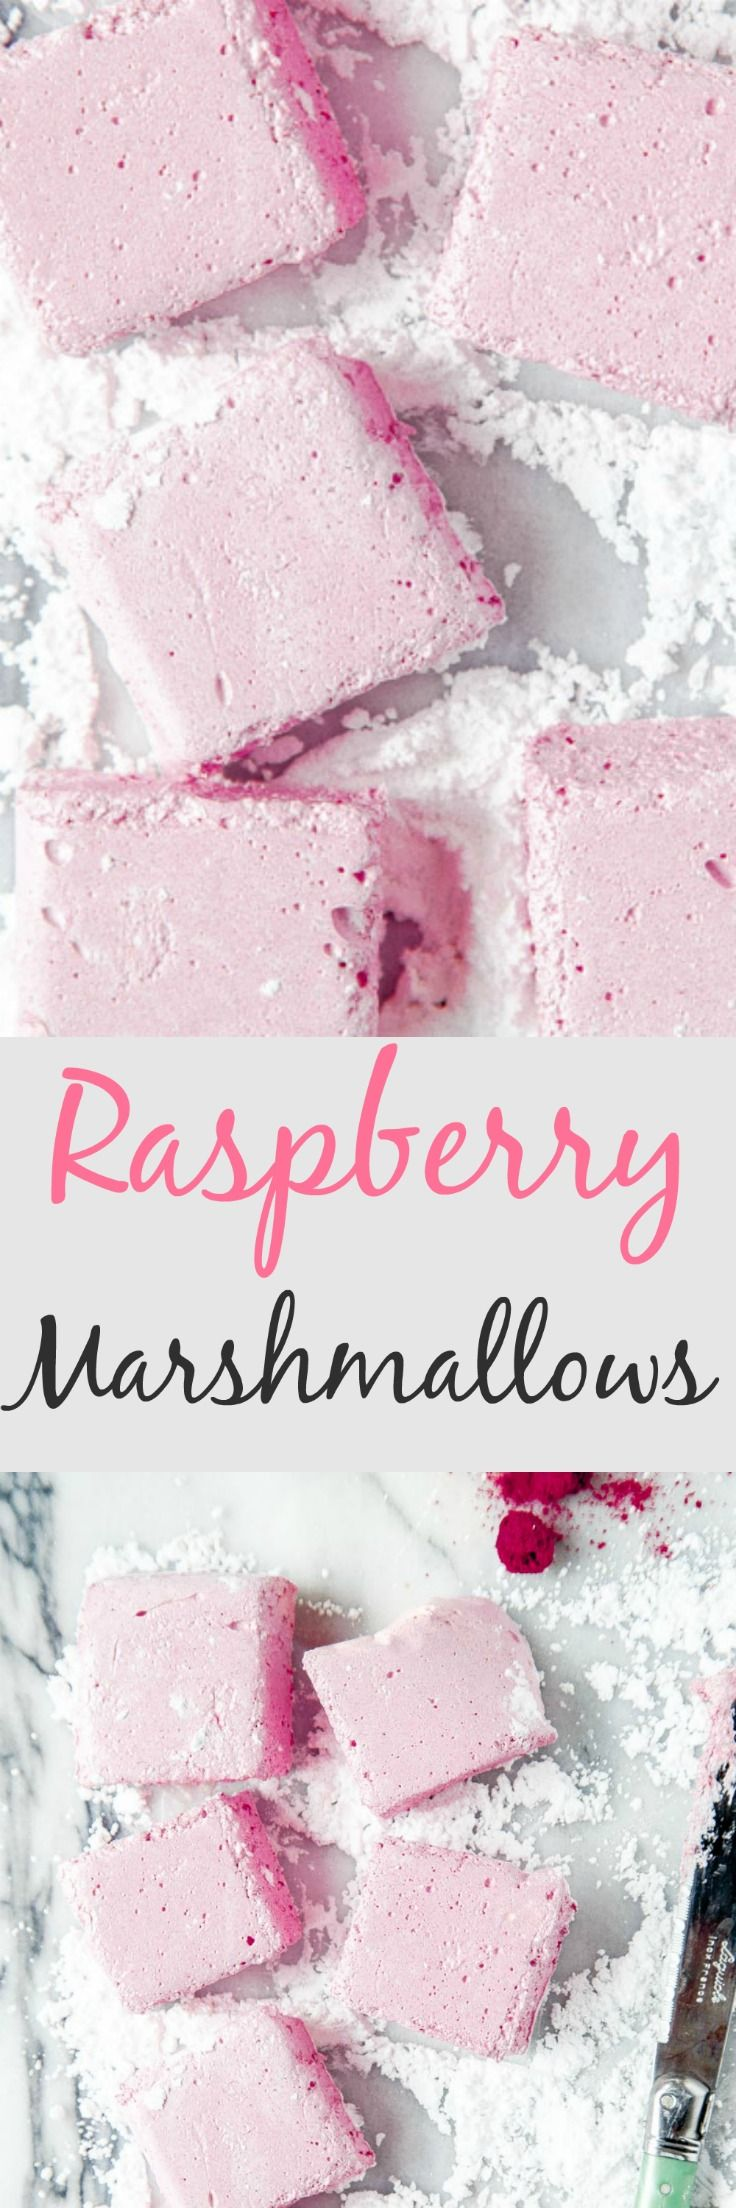 Homemade pink raspberry marshmallows for your sweetie on Valentine's Day! Small batch recipe @dessertfortwo